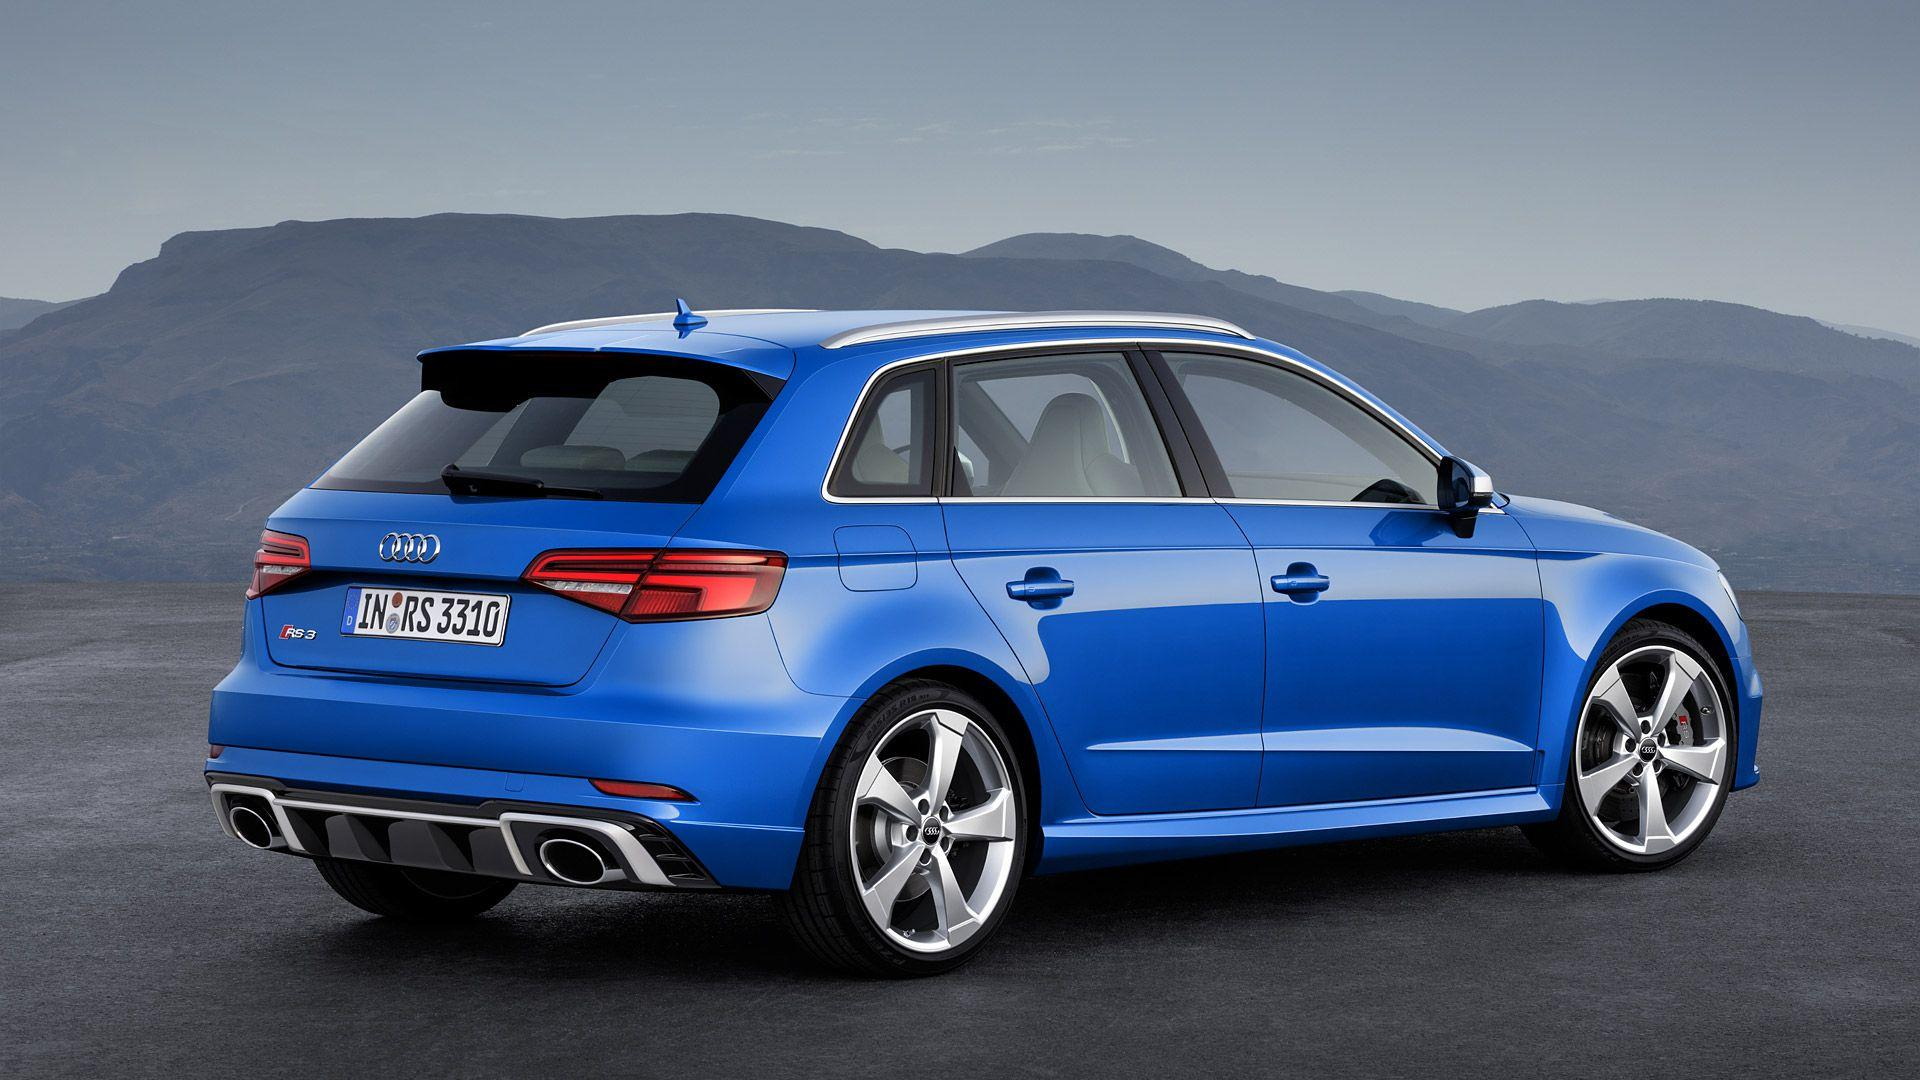 2018 Audi RS3 Sportback Wallpapers & HD Image